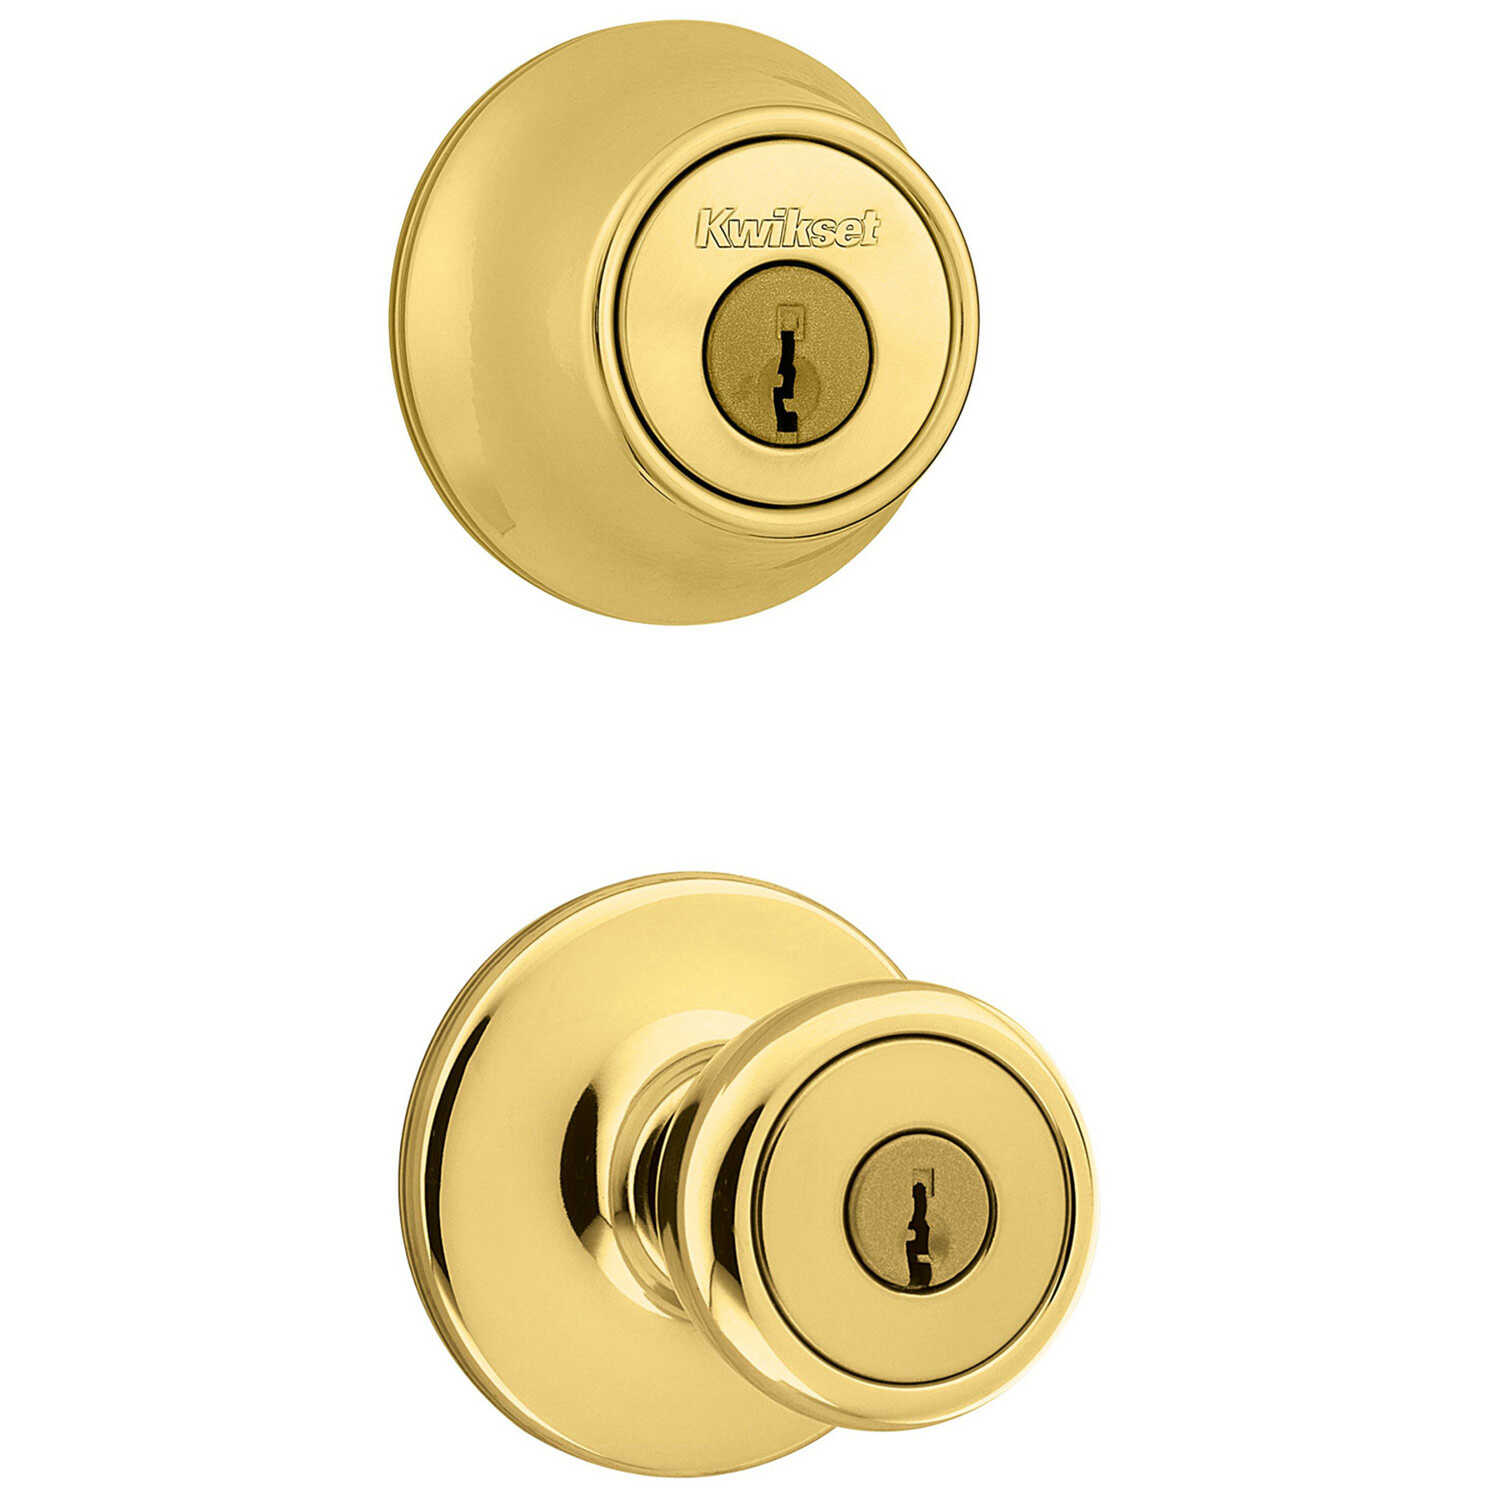 Kwikset  Tylo  Polished Brass  Entry Lock and Single Cylinder Deadbolt  ANSI/BHMA Grade 3  1-3/4 in.